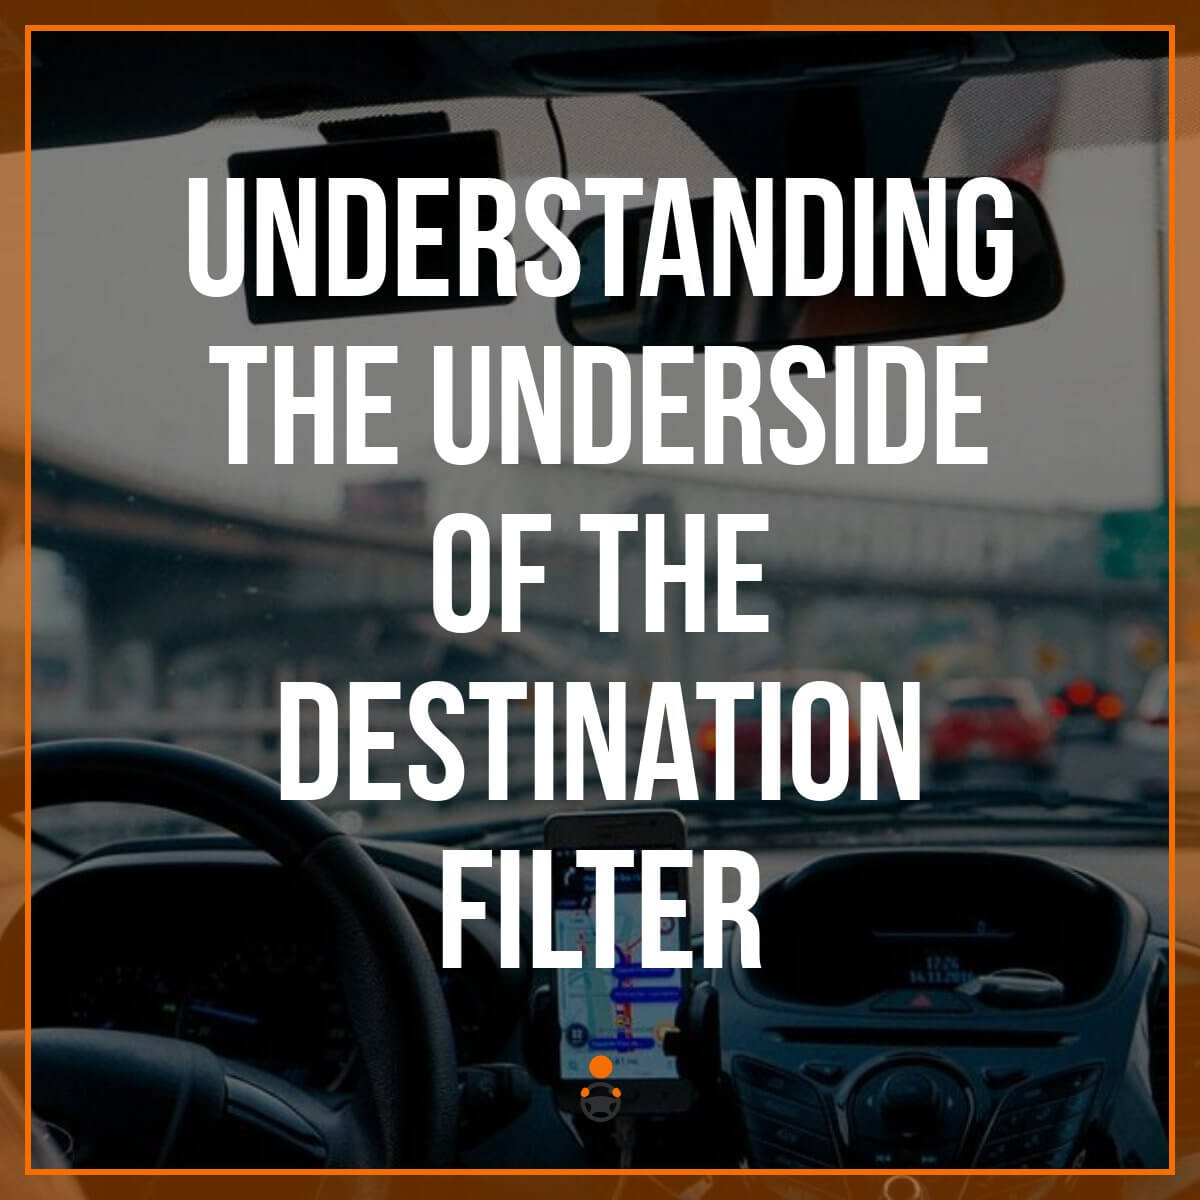 When introduced, destination filters were incredibly popular with drivers. Finally, some measure of control over when and where we drove, right? Unfortunately, destination filters have been clawed back, leaving drivers feeling frustrated and wondering what they can do. Senior RSG contributor John Incecovers what happened to the destination filter, why, and how drivers can try to work around the limits of the destination filter.